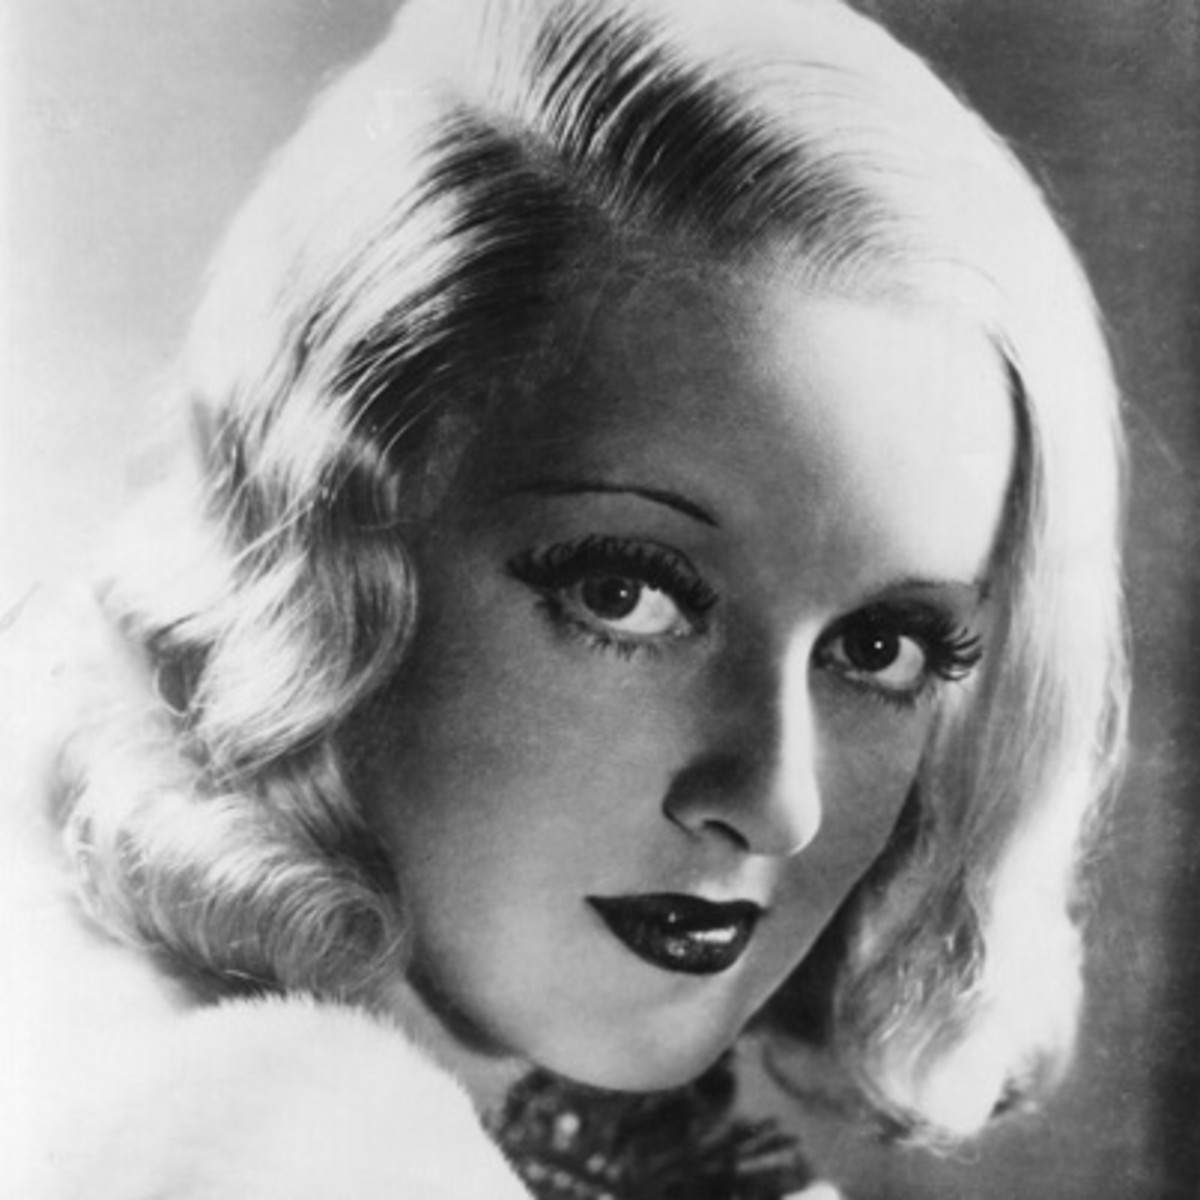 bette davis classic pin ups actress biography. Black Bedroom Furniture Sets. Home Design Ideas